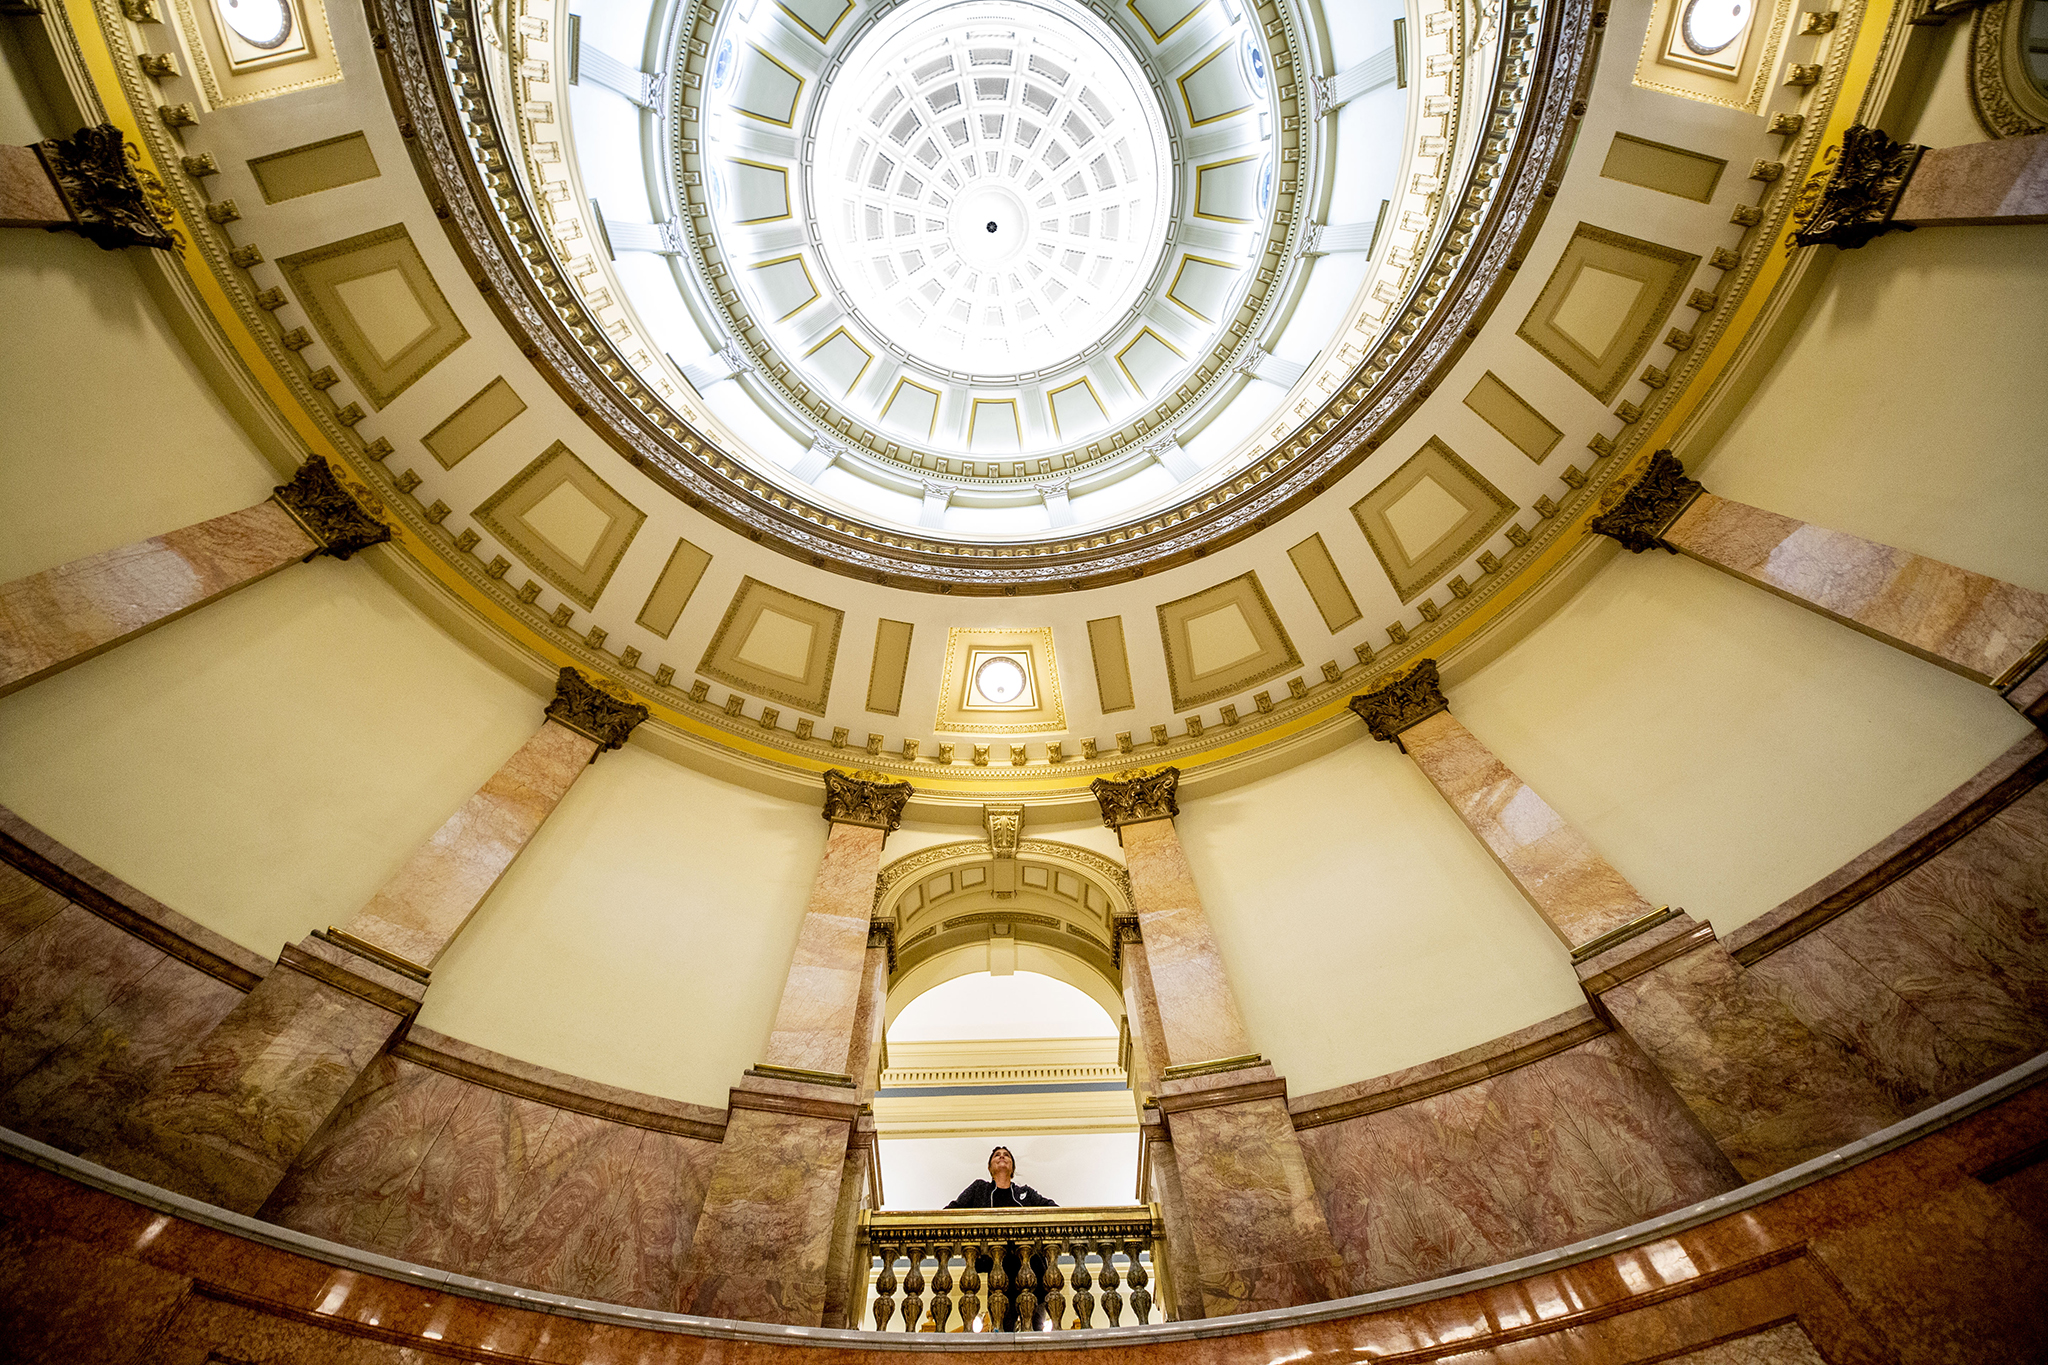 A woman peers into the Colorado State Captiol rotunda. March 12, 2020.